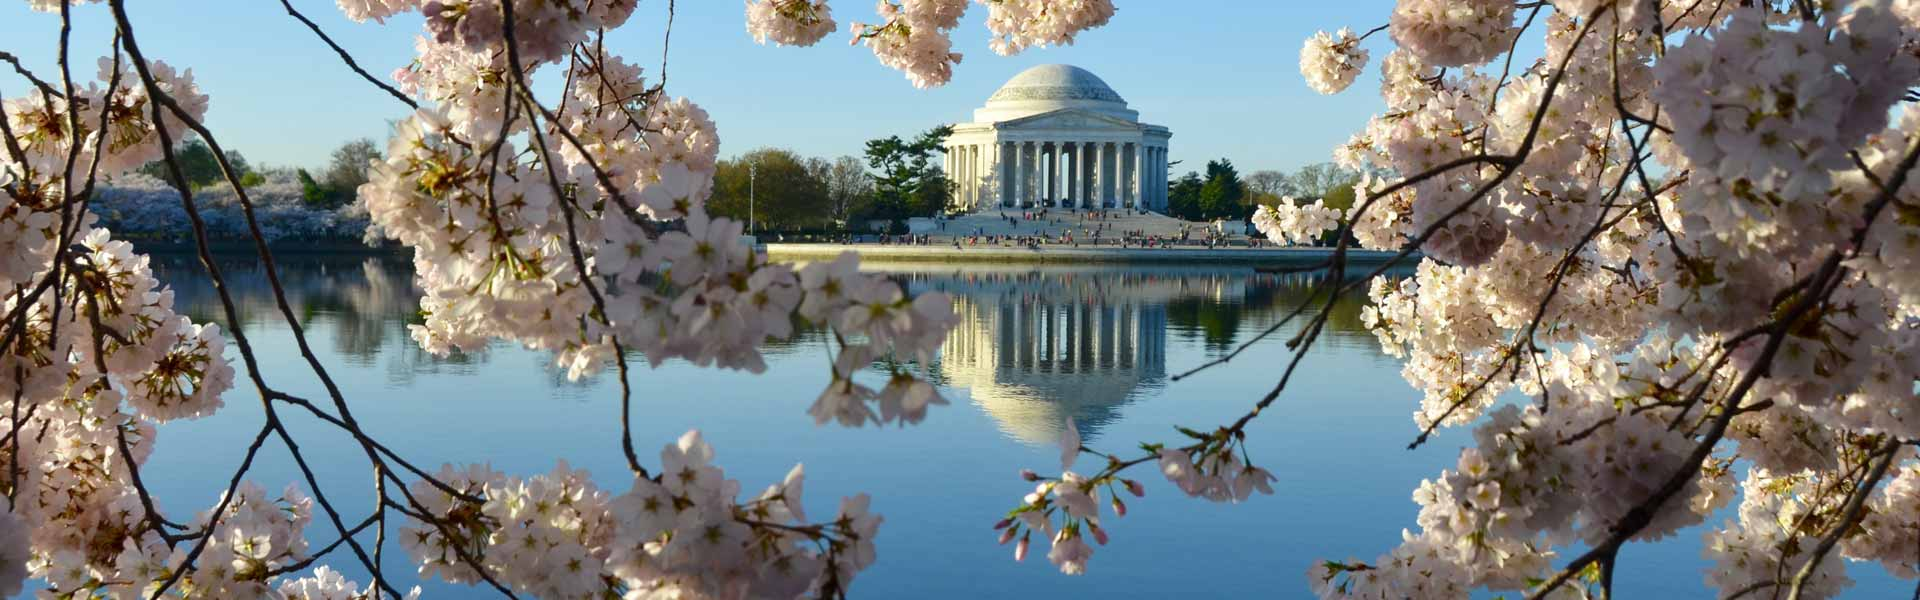 View of Jefferson Memorial through Cherry Blossoms